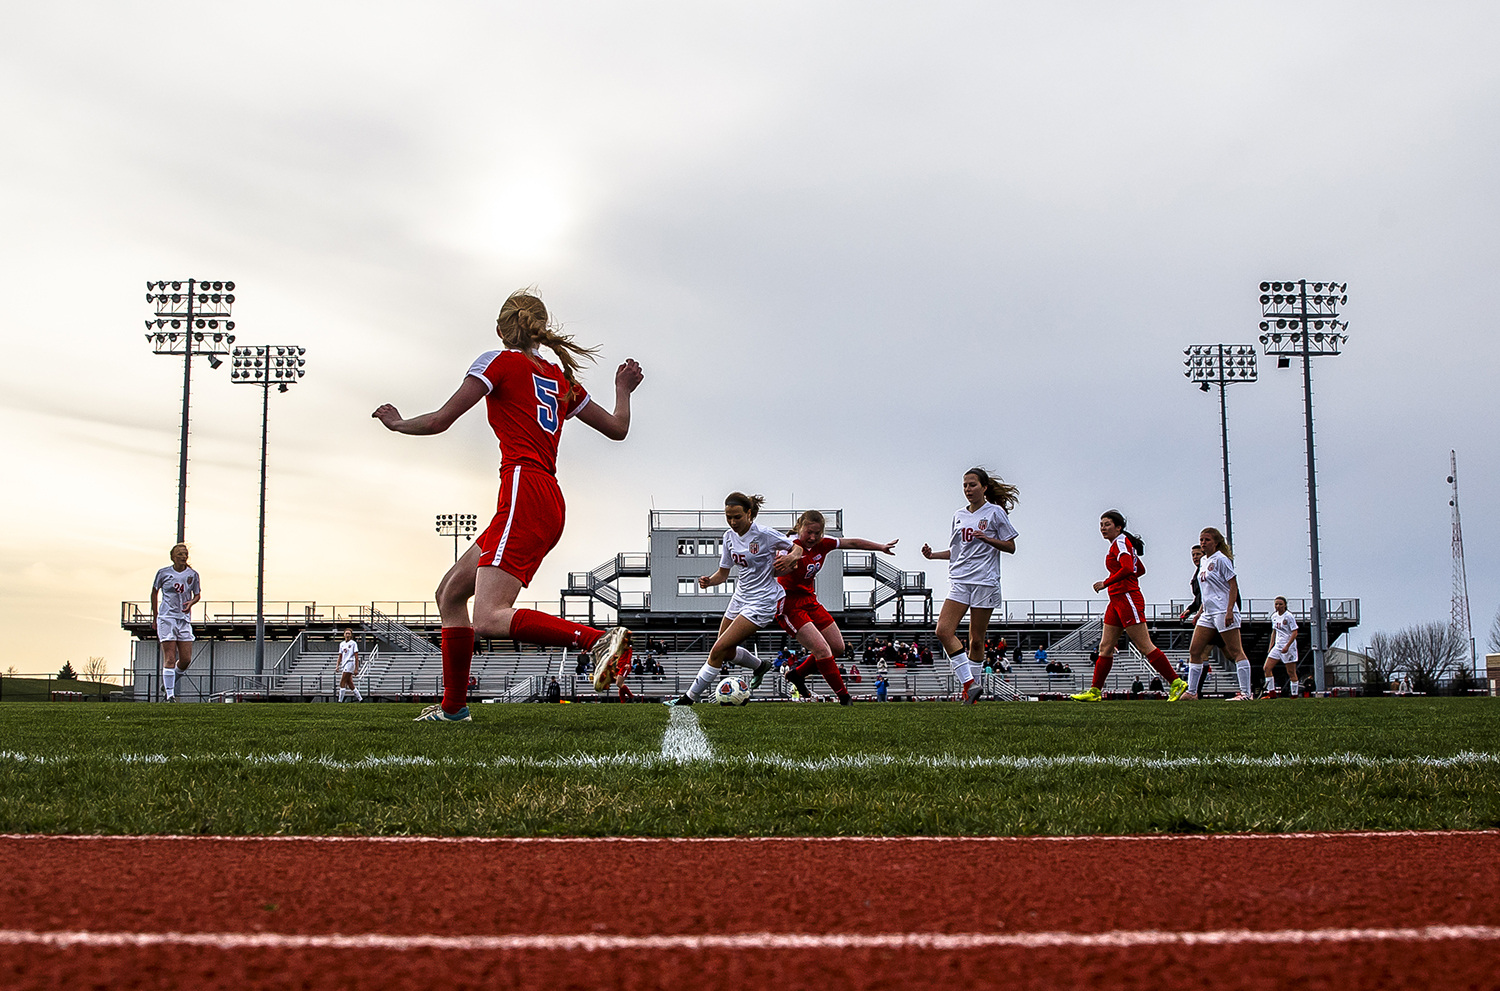 Clouds move in obscuring the sun as Pleasant Plains takes on Glenwood in the second half at Glenwood High School, Thursday, April 5, 2018, in Chatham, Ill. Athletic directors have been coping with several weeks of precipitation and cold that have postponed numerous sports events. [Justin L. Fowler/The State Journal-Register]